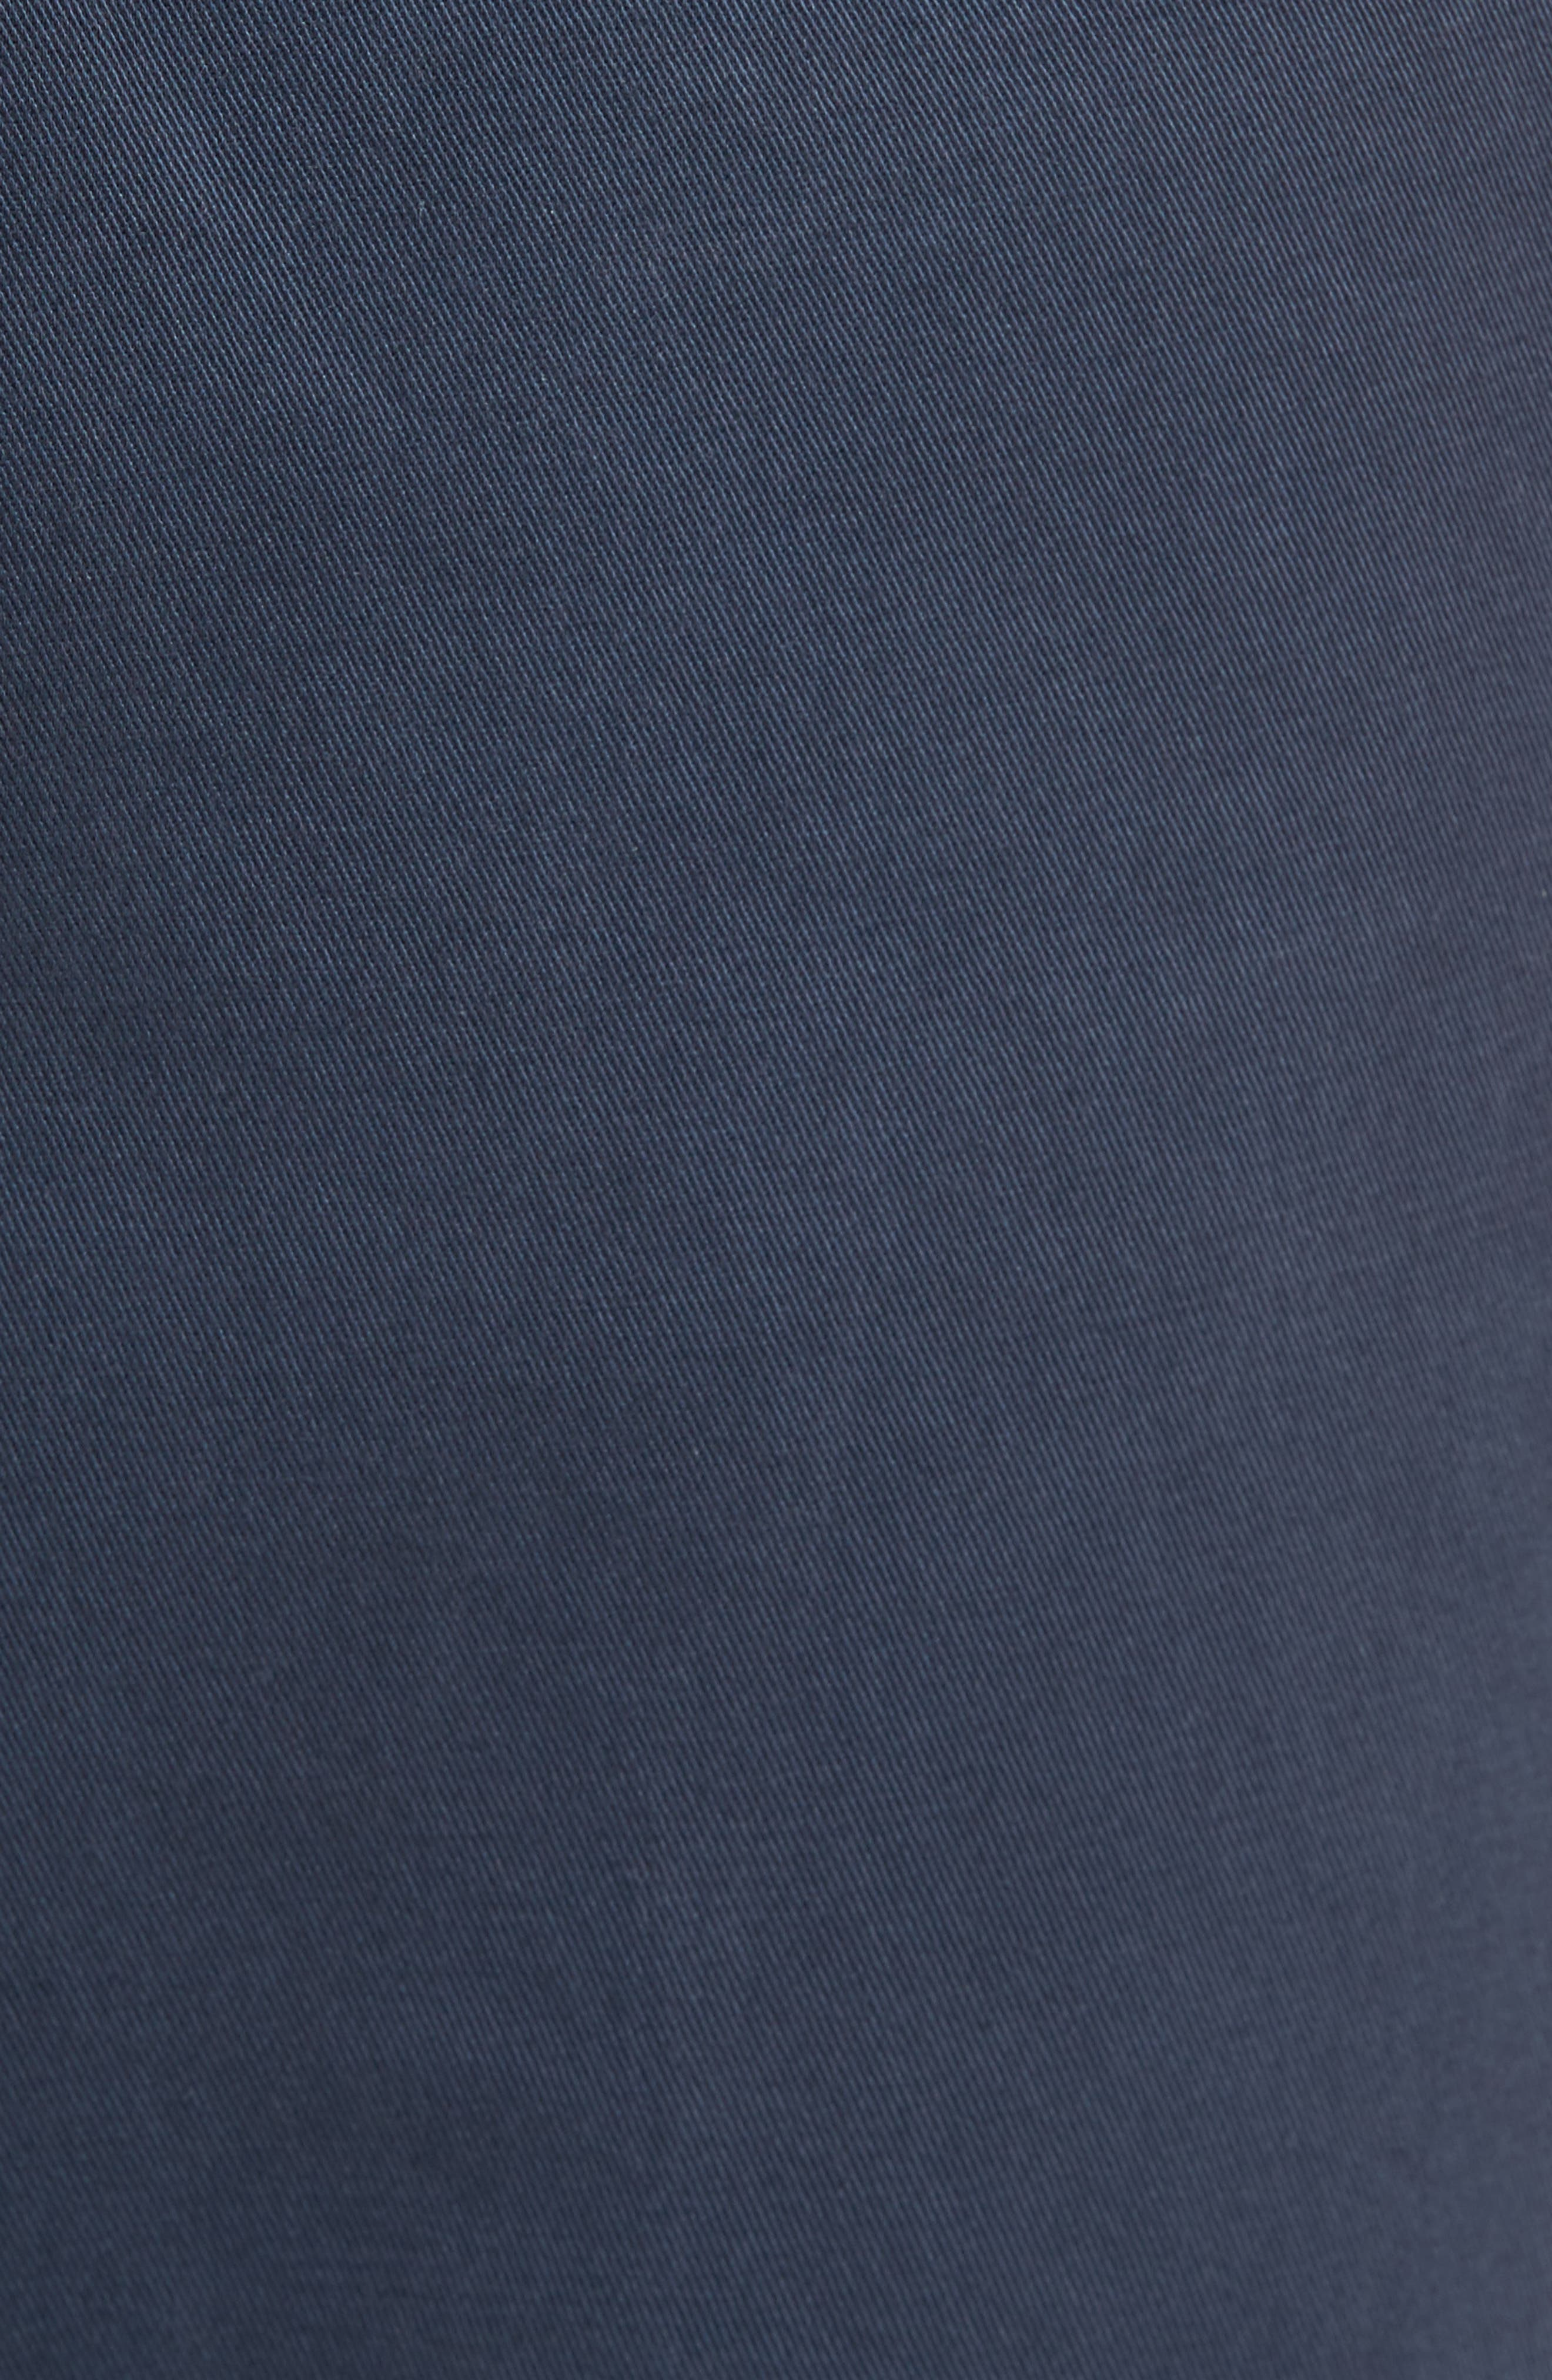 Classic Fit Military Chinos,                             Alternate thumbnail 5, color,                             NAVY